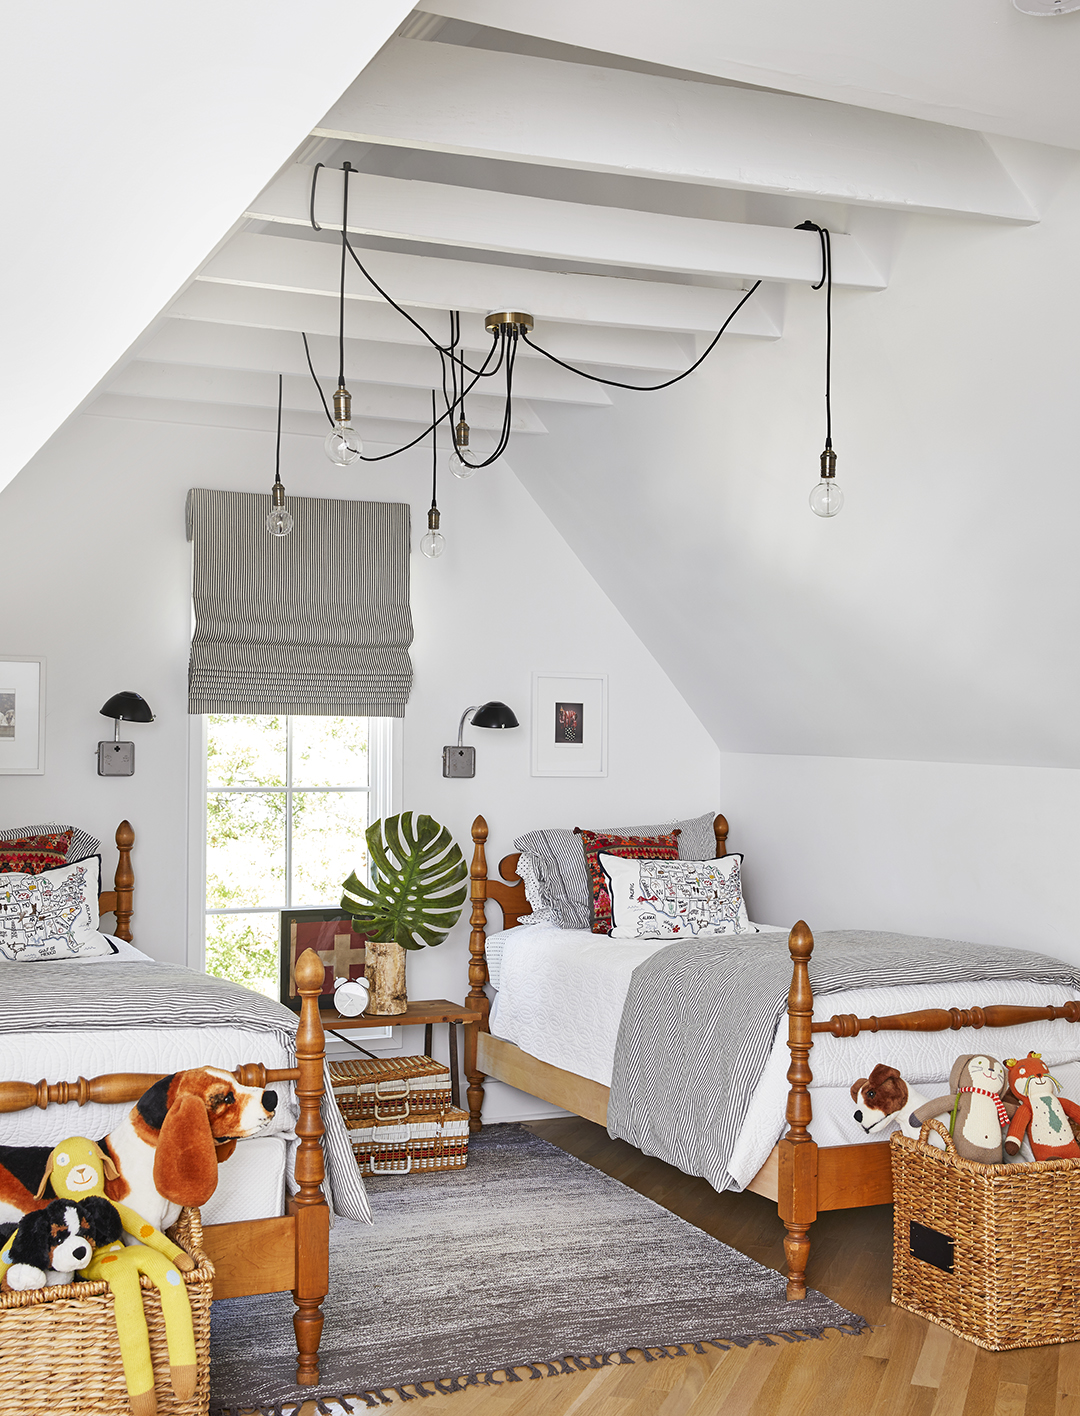 boys-bedroom-with-corded-lights-on-rafters-3d2eb9a5.jpg